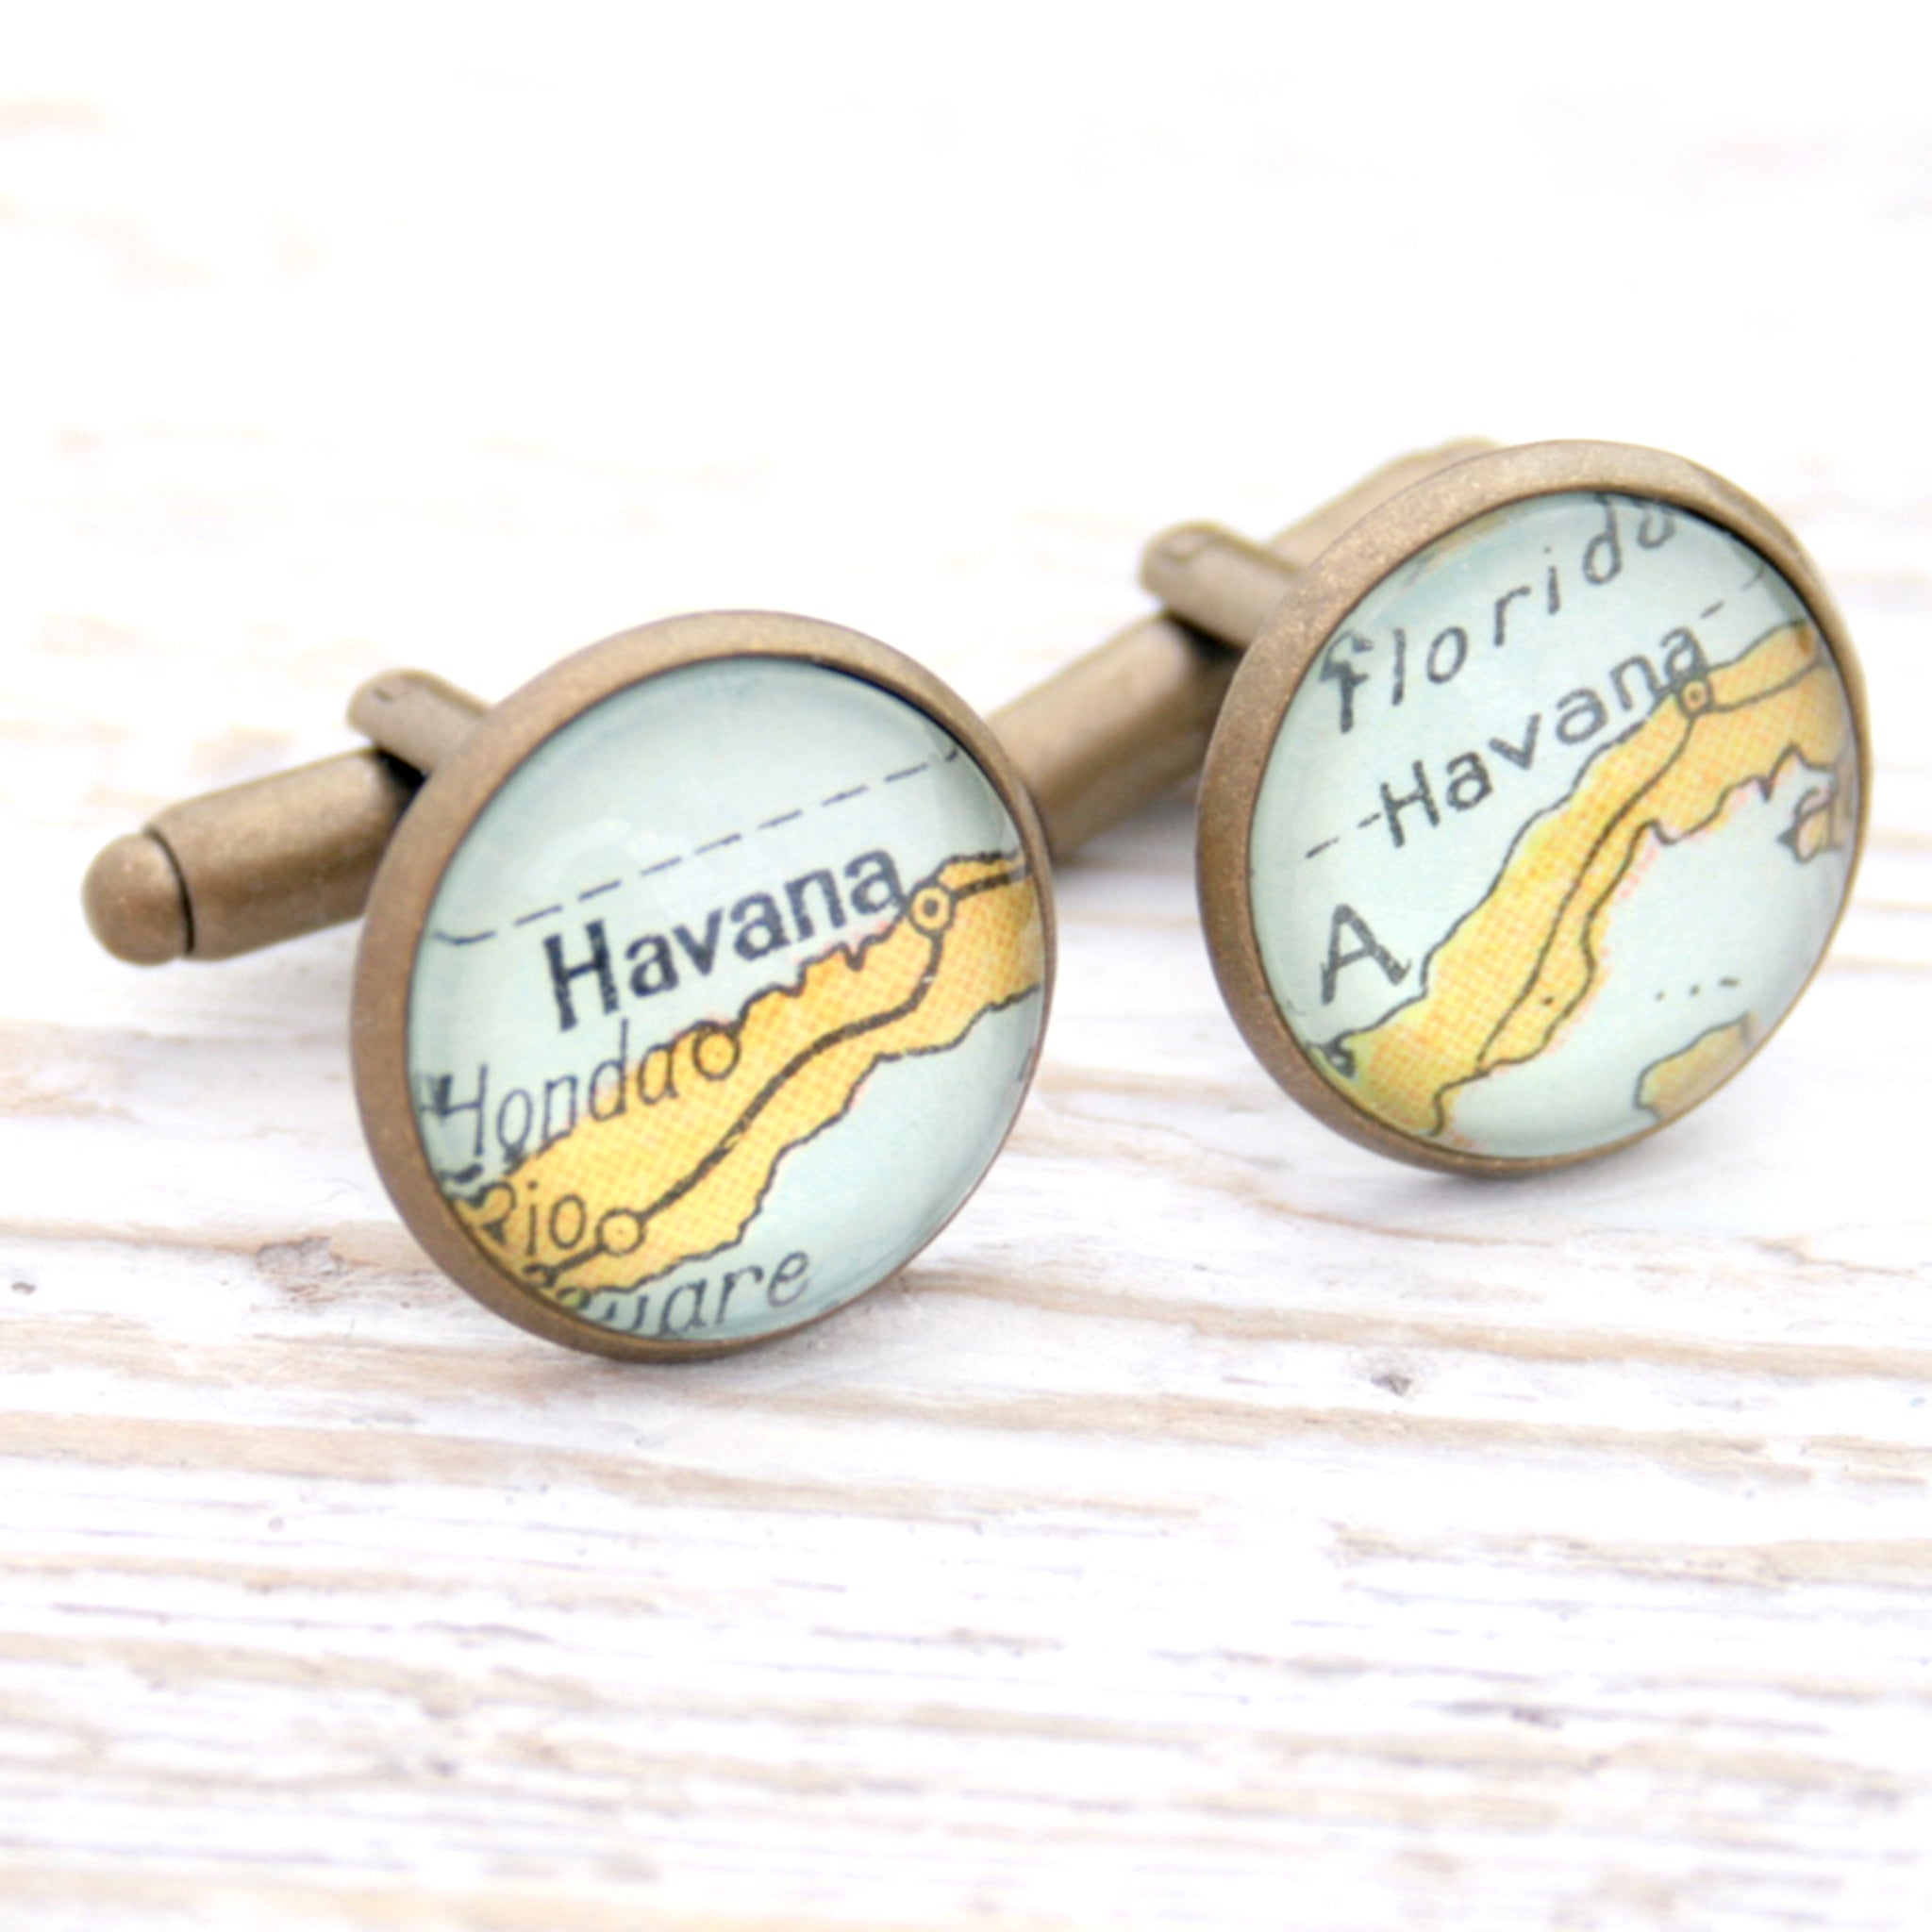 Personalised map cufflinks in antique bronze color featuring maps of Havana